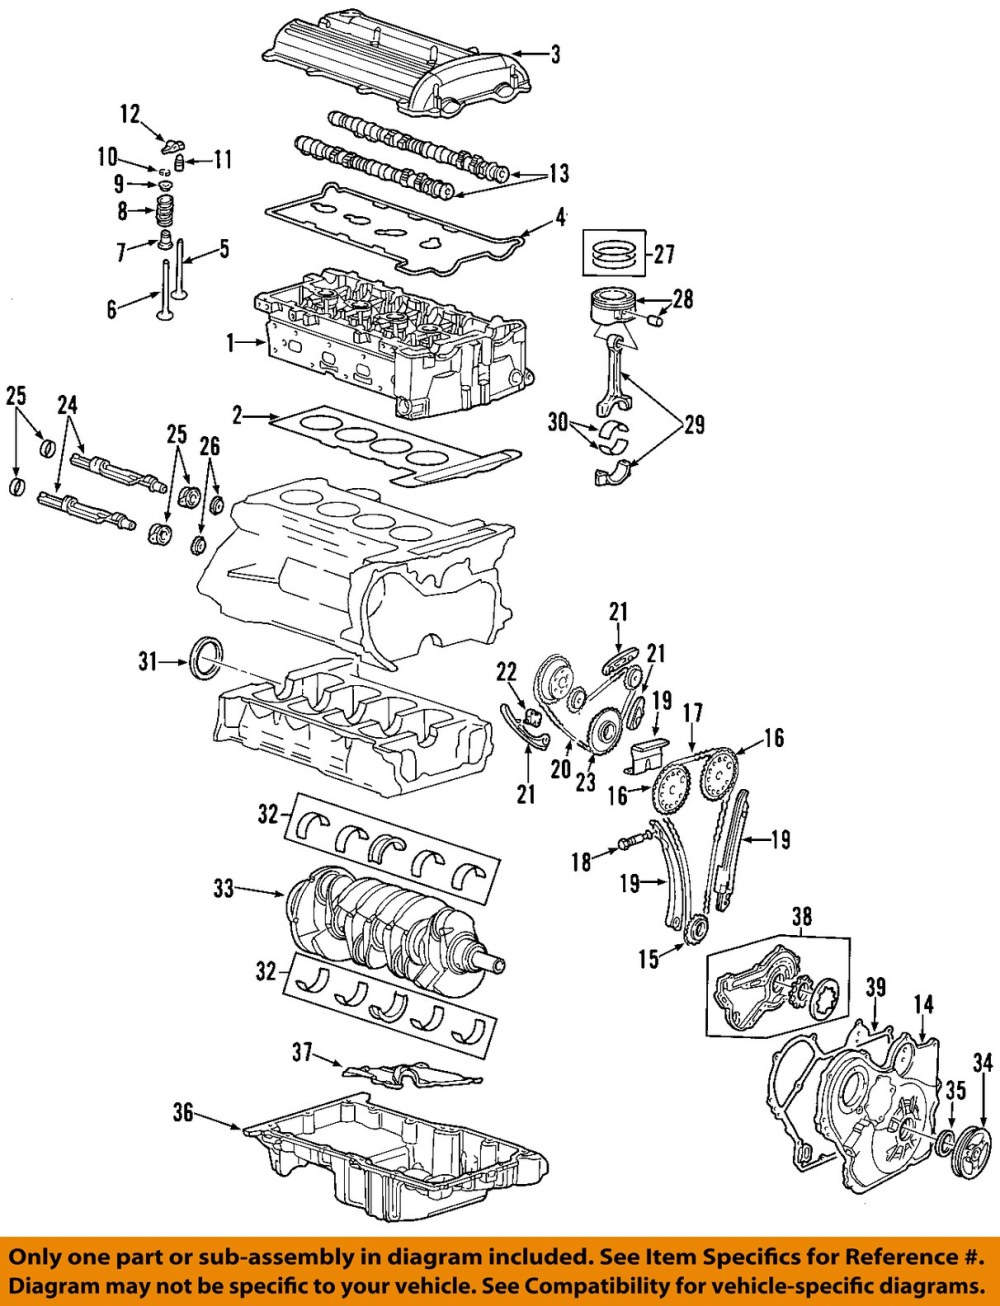 medium resolution of 2007 saturn vue engine diagram basic electronics wiring diagram 2001 saturn sc1 engine diagram 2004 saturn